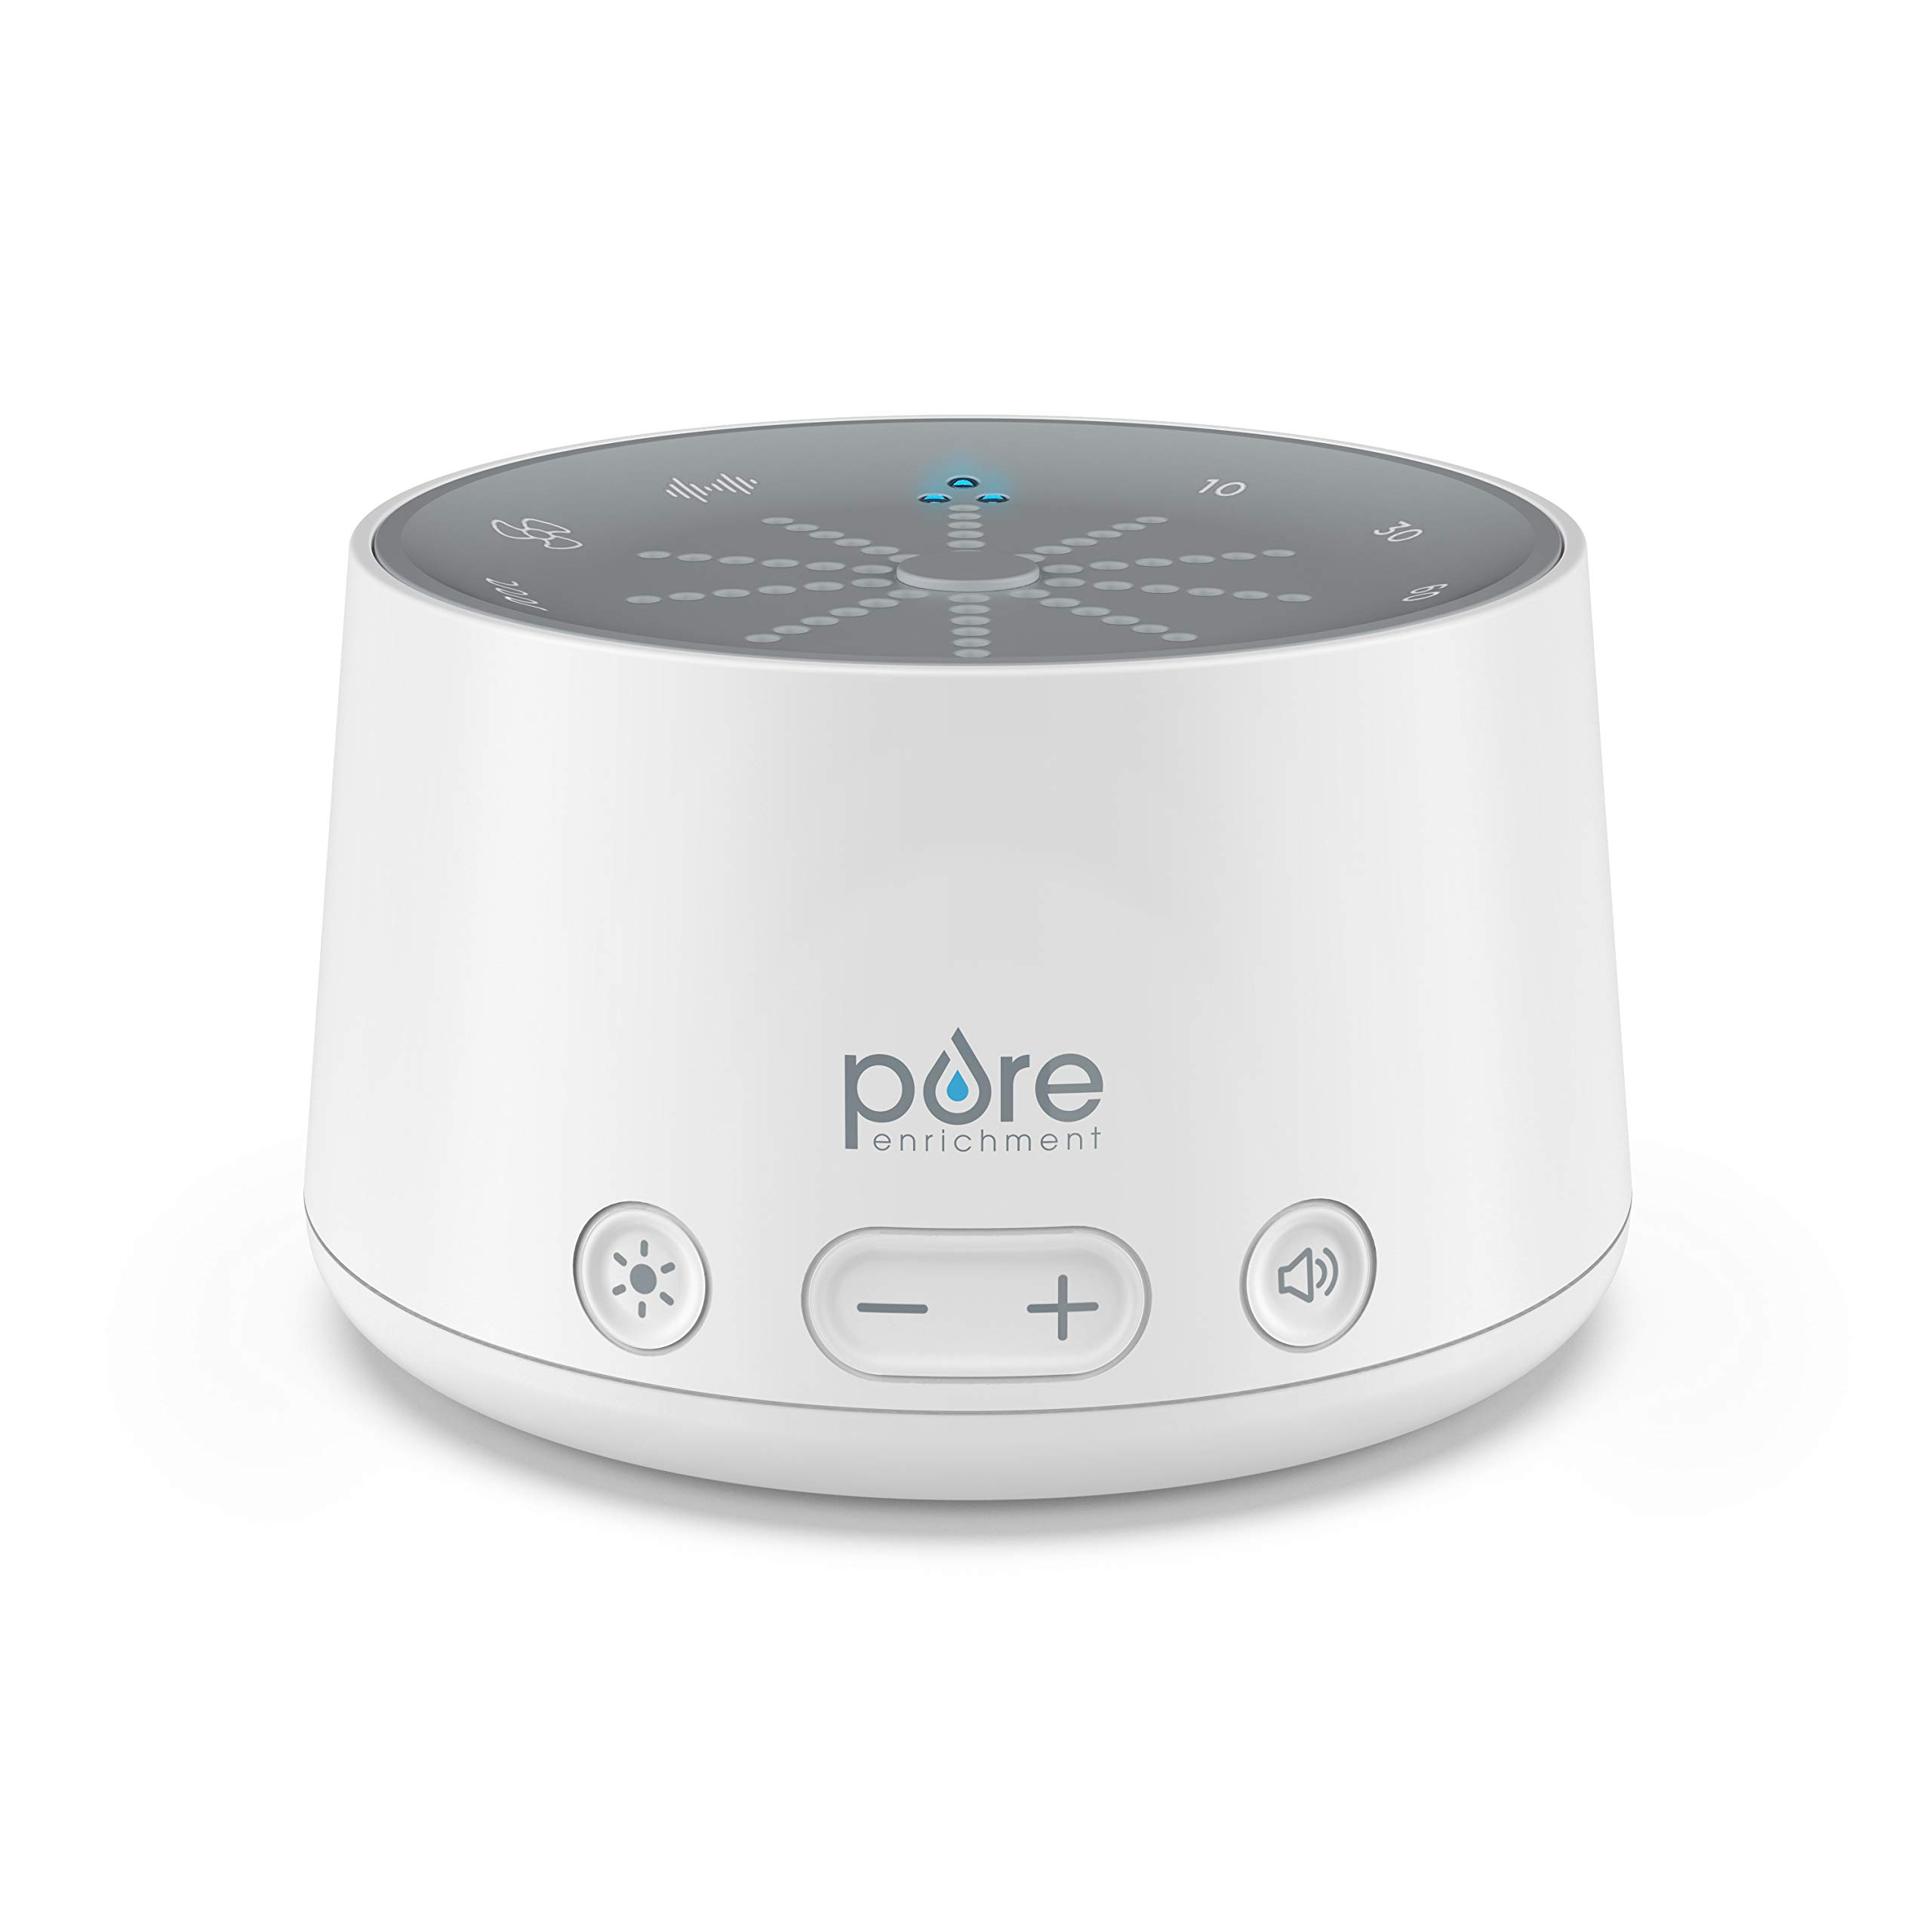 Pure Enrichment Doze Sound Machine & Sleep Therapy Light - Combines 6 Soothing Sounds with Relaxing Pulse Light for Better Sleep - Includes Built-in USB Charger & Auto-Off Timer